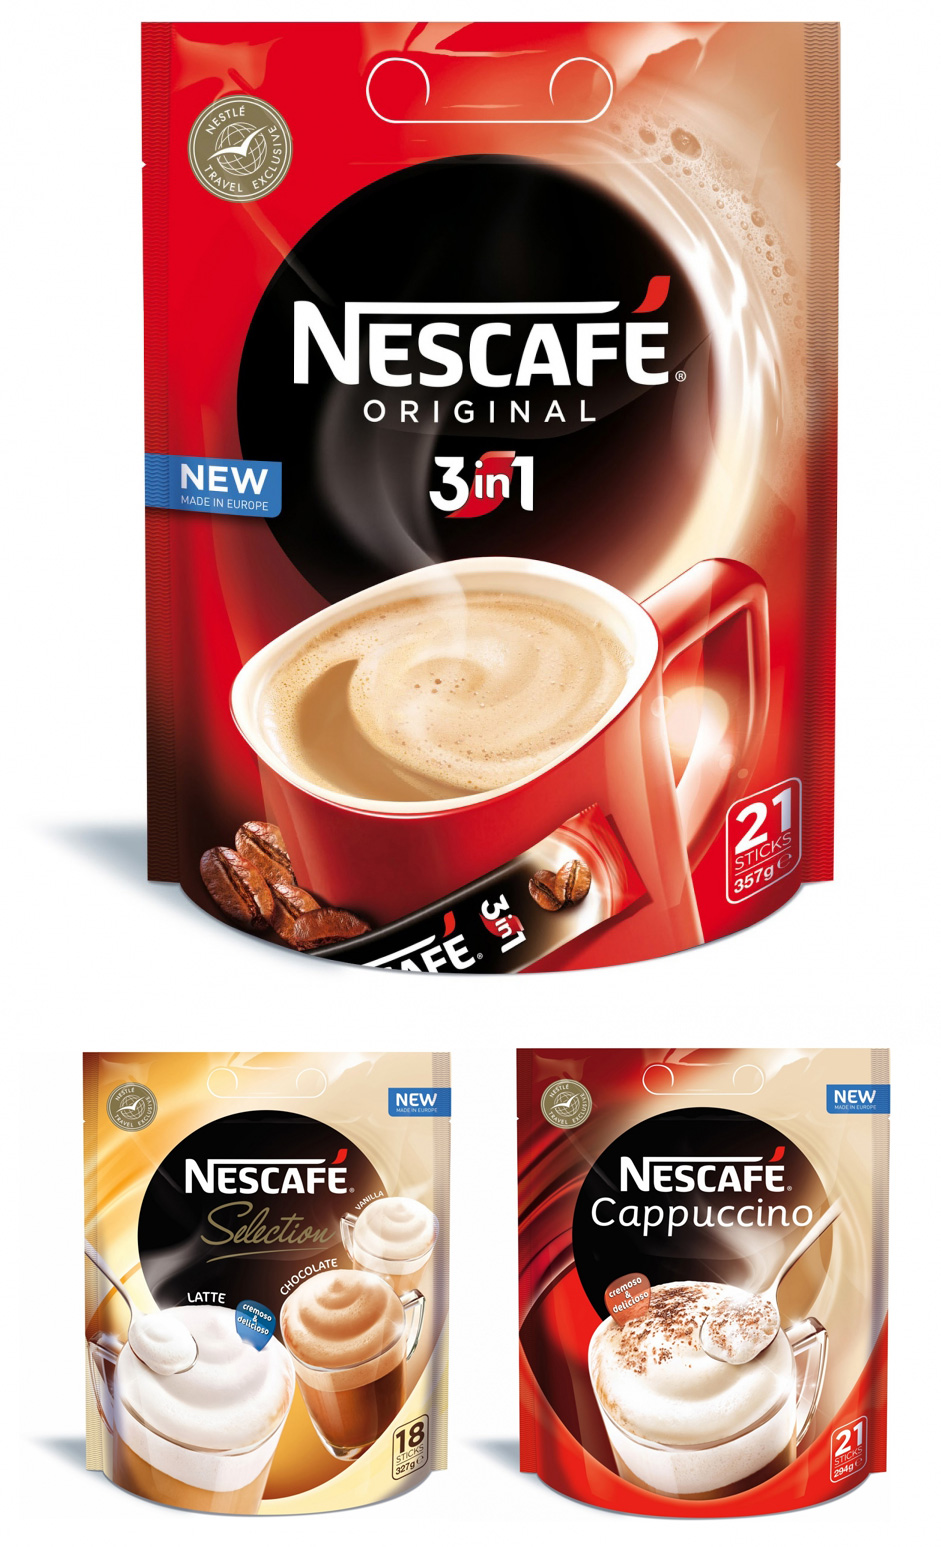 nescafe_packaging.jpg